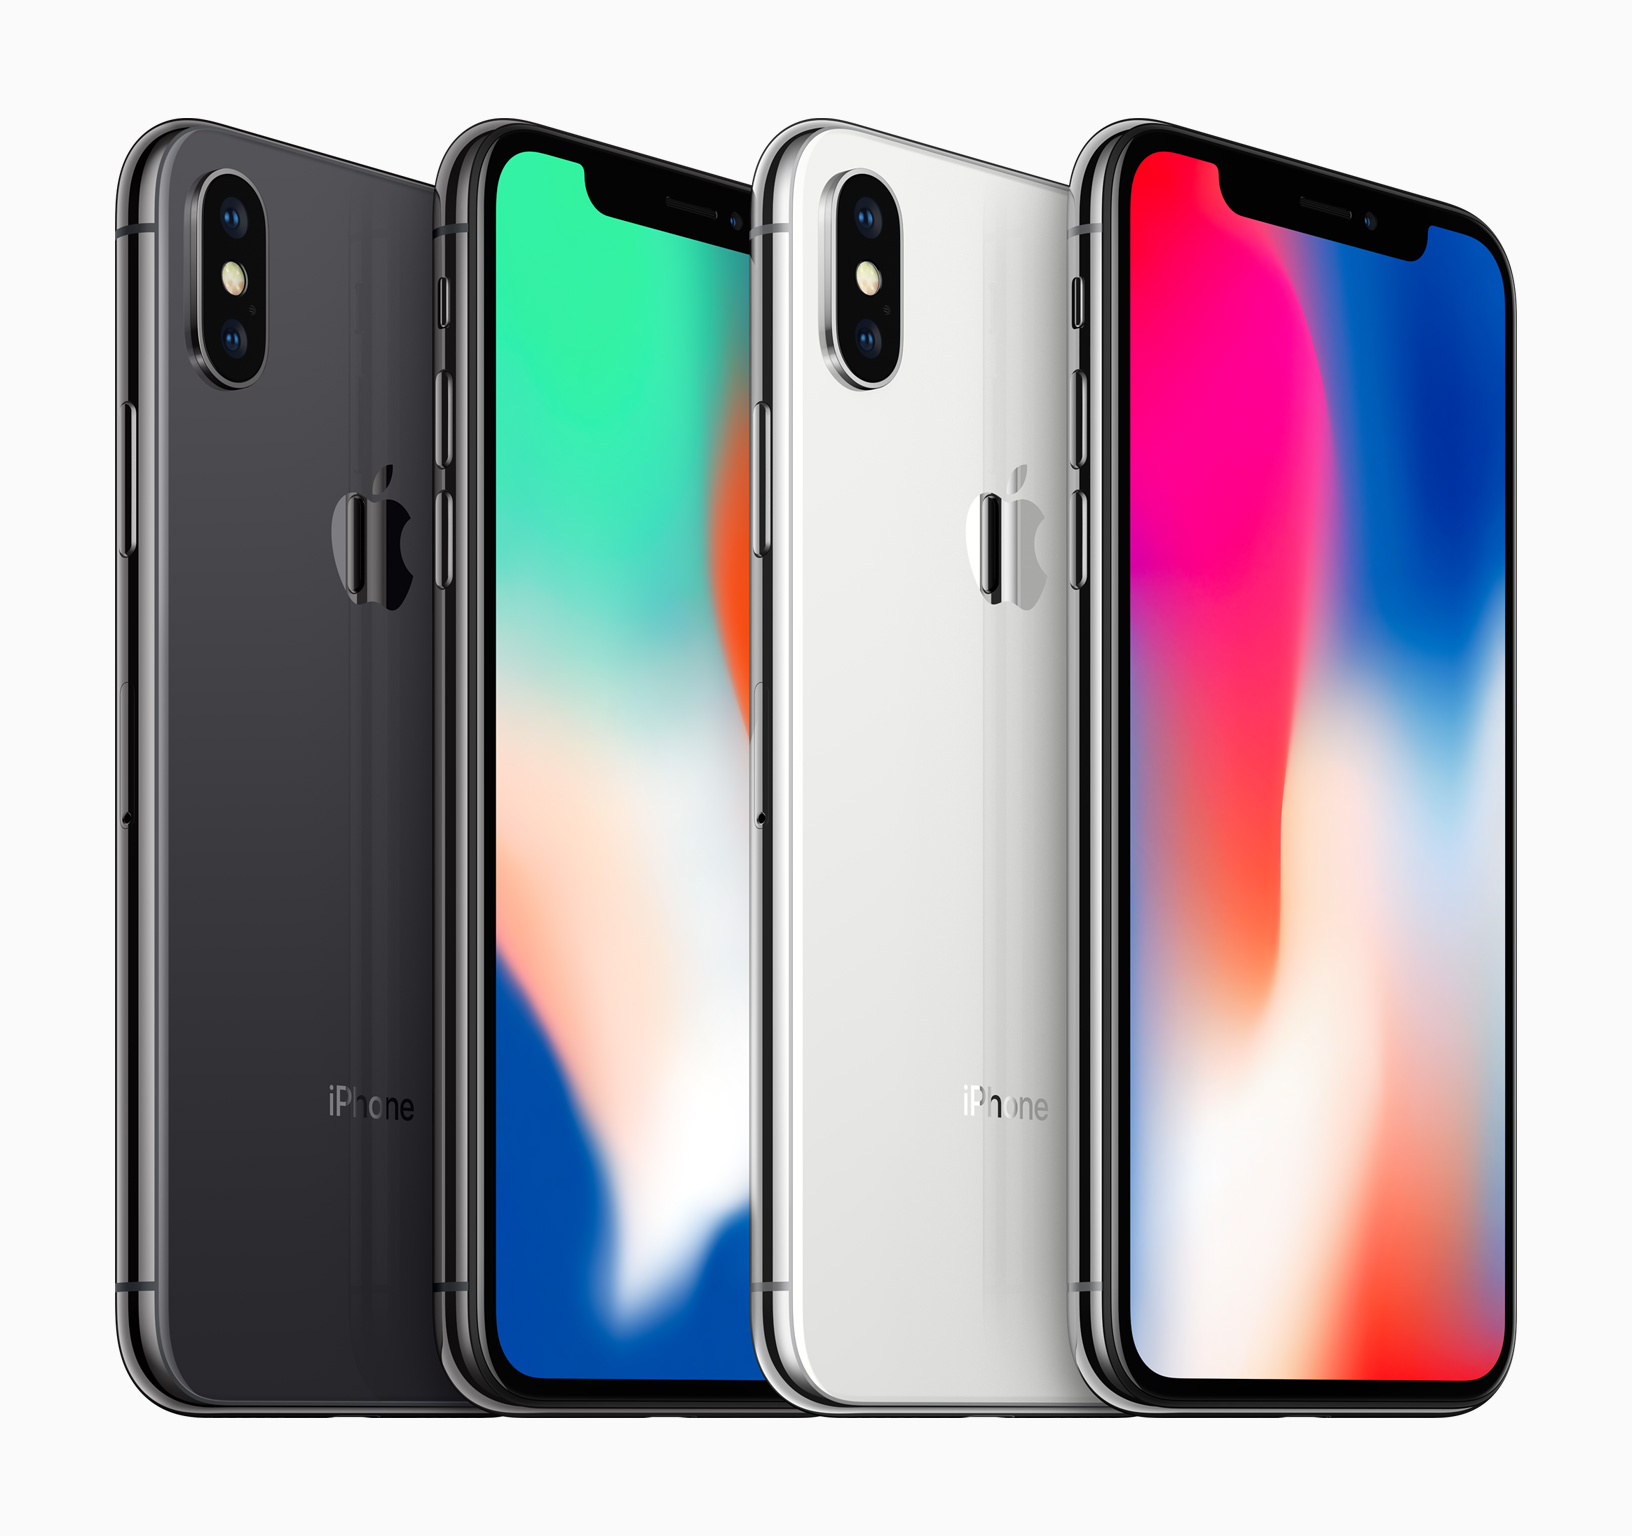 Wireless headphones iphone x - apple wireless headphones iphone x